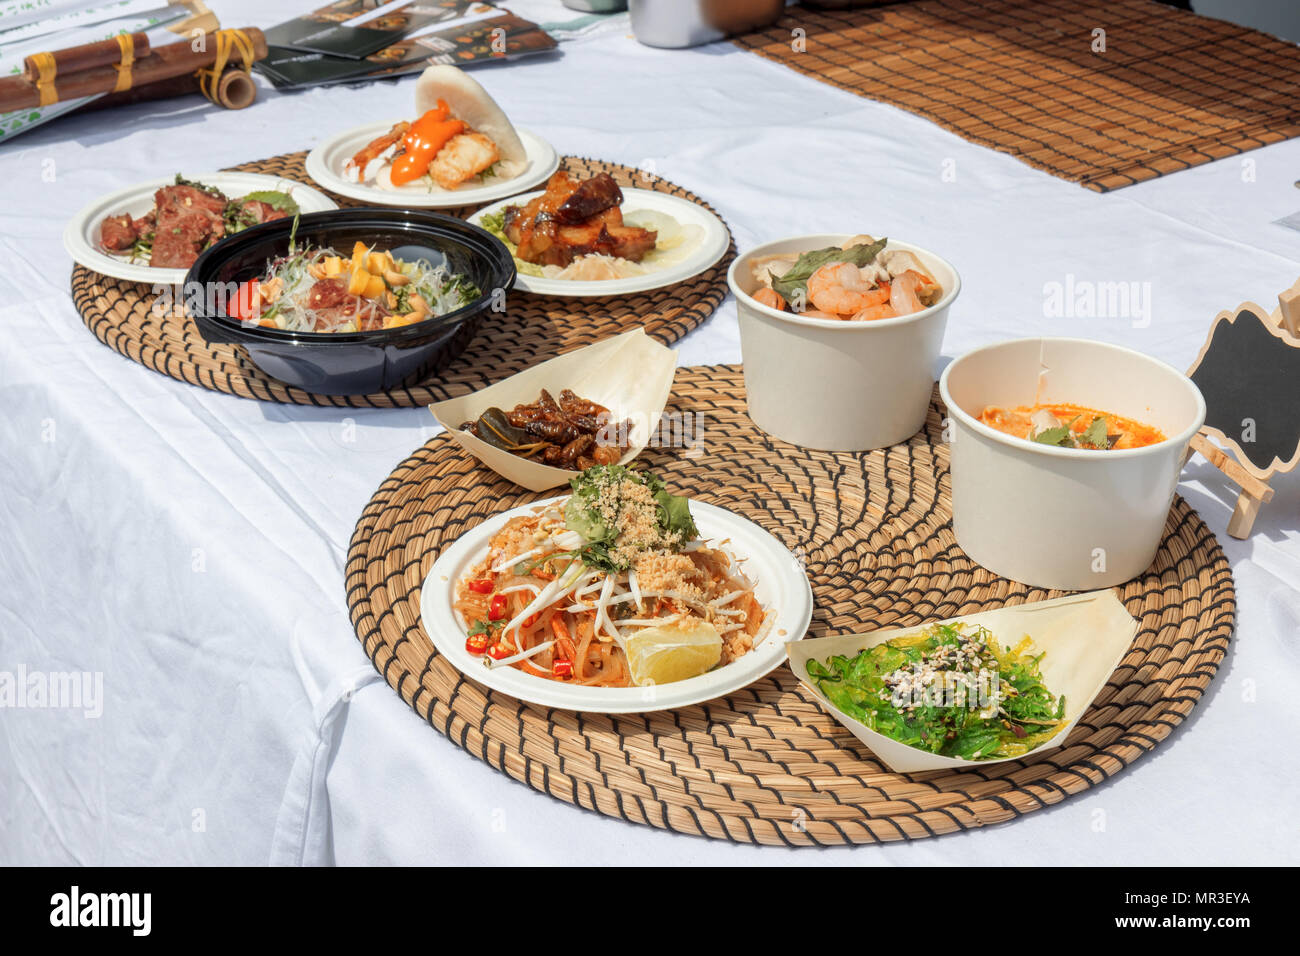 food samples, variations of diverse Asian dishes served on trays during the Asian street farmers market. Soft shell Crab Bao, roasted silkworm, Tom Yu - Stock Image